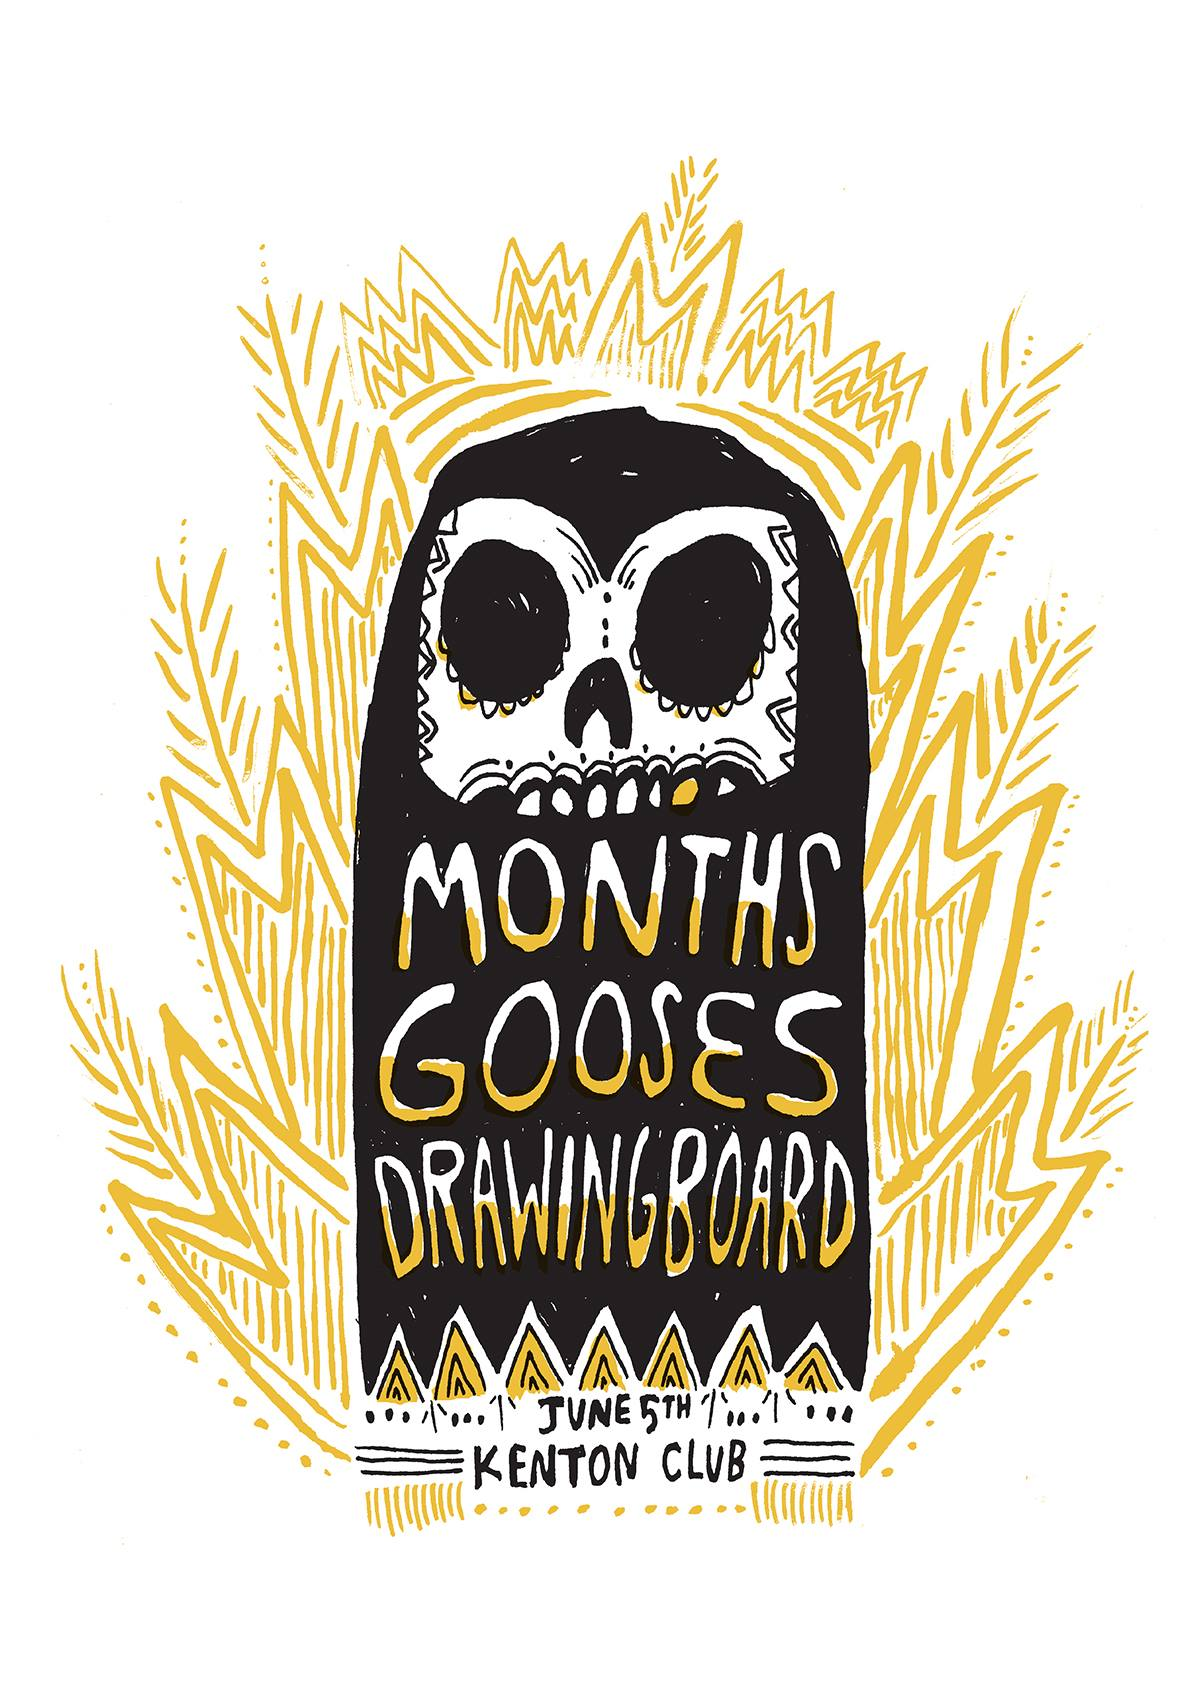 months with gooses and drawingboard at world famous kenton club on june 5 2014.